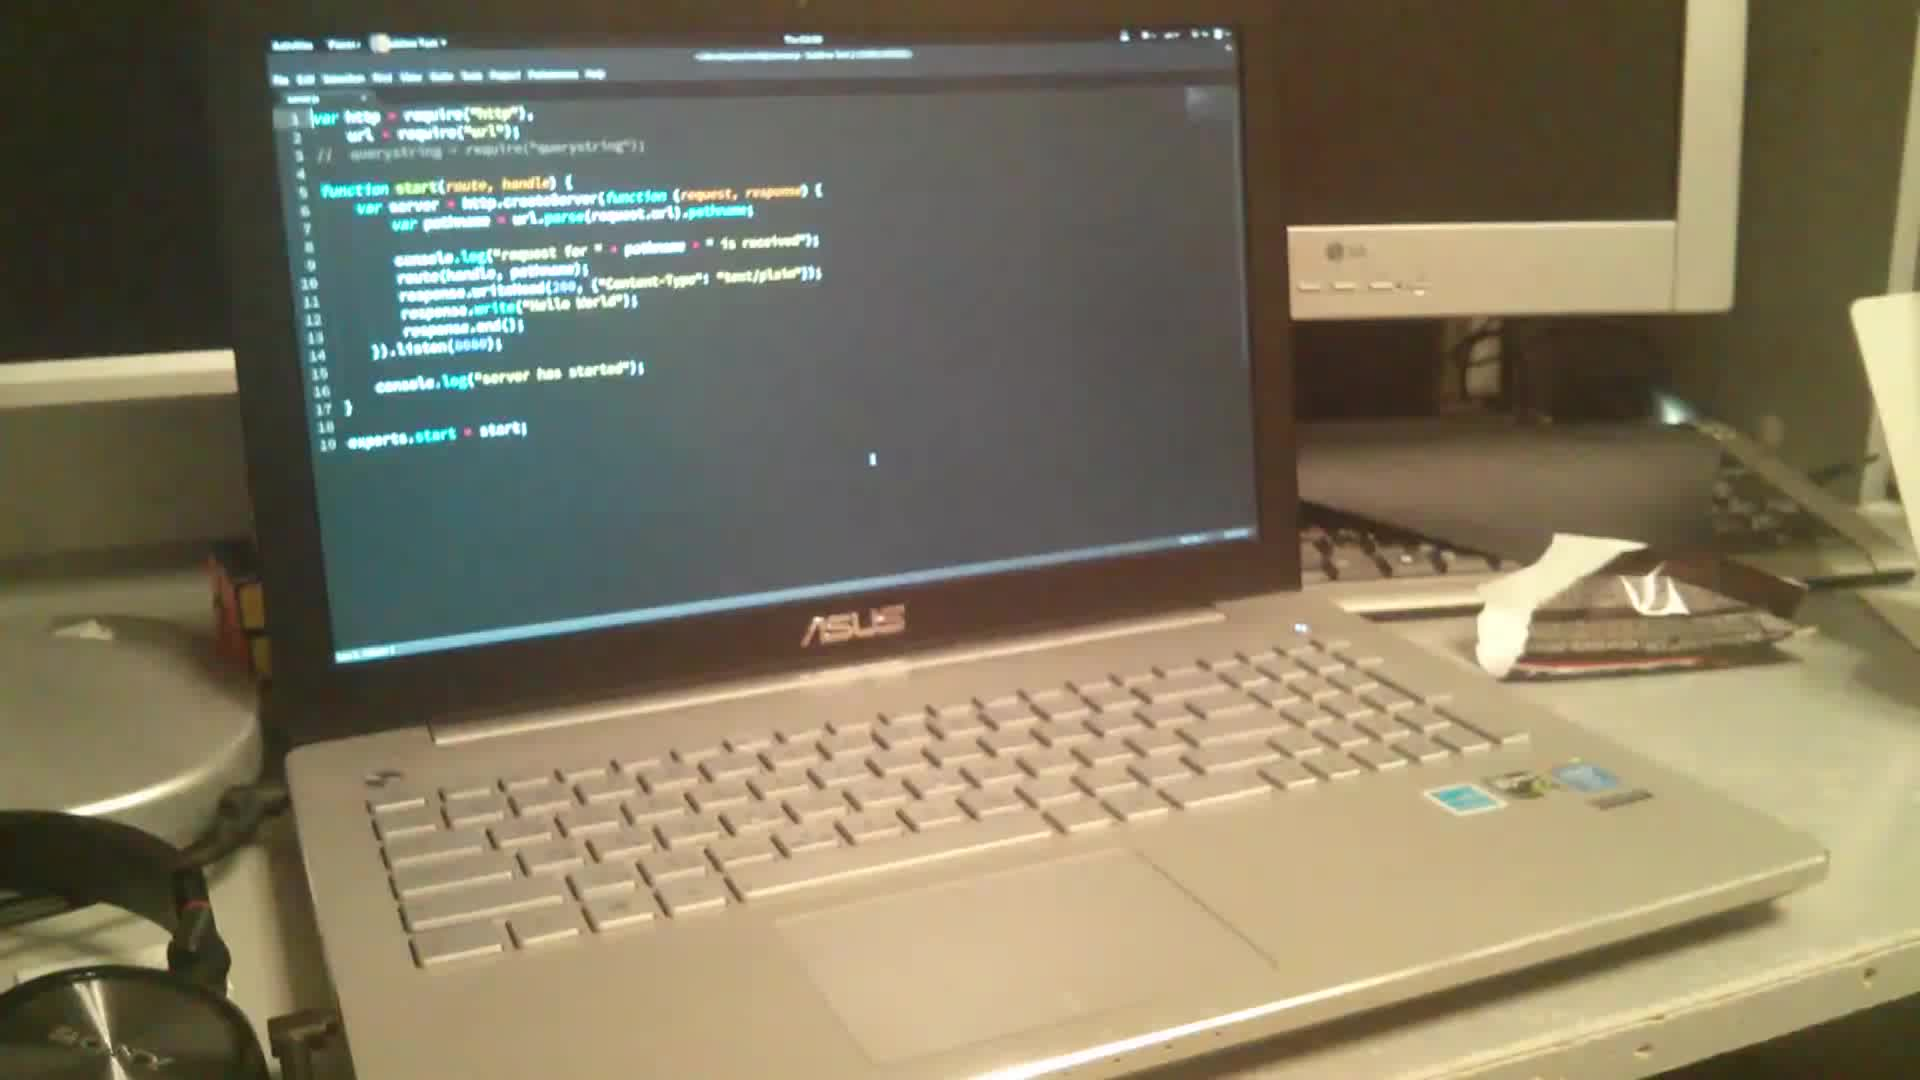 Howto & Style, Lucifer /, Touchegg. Test on ArchLinux GIFs